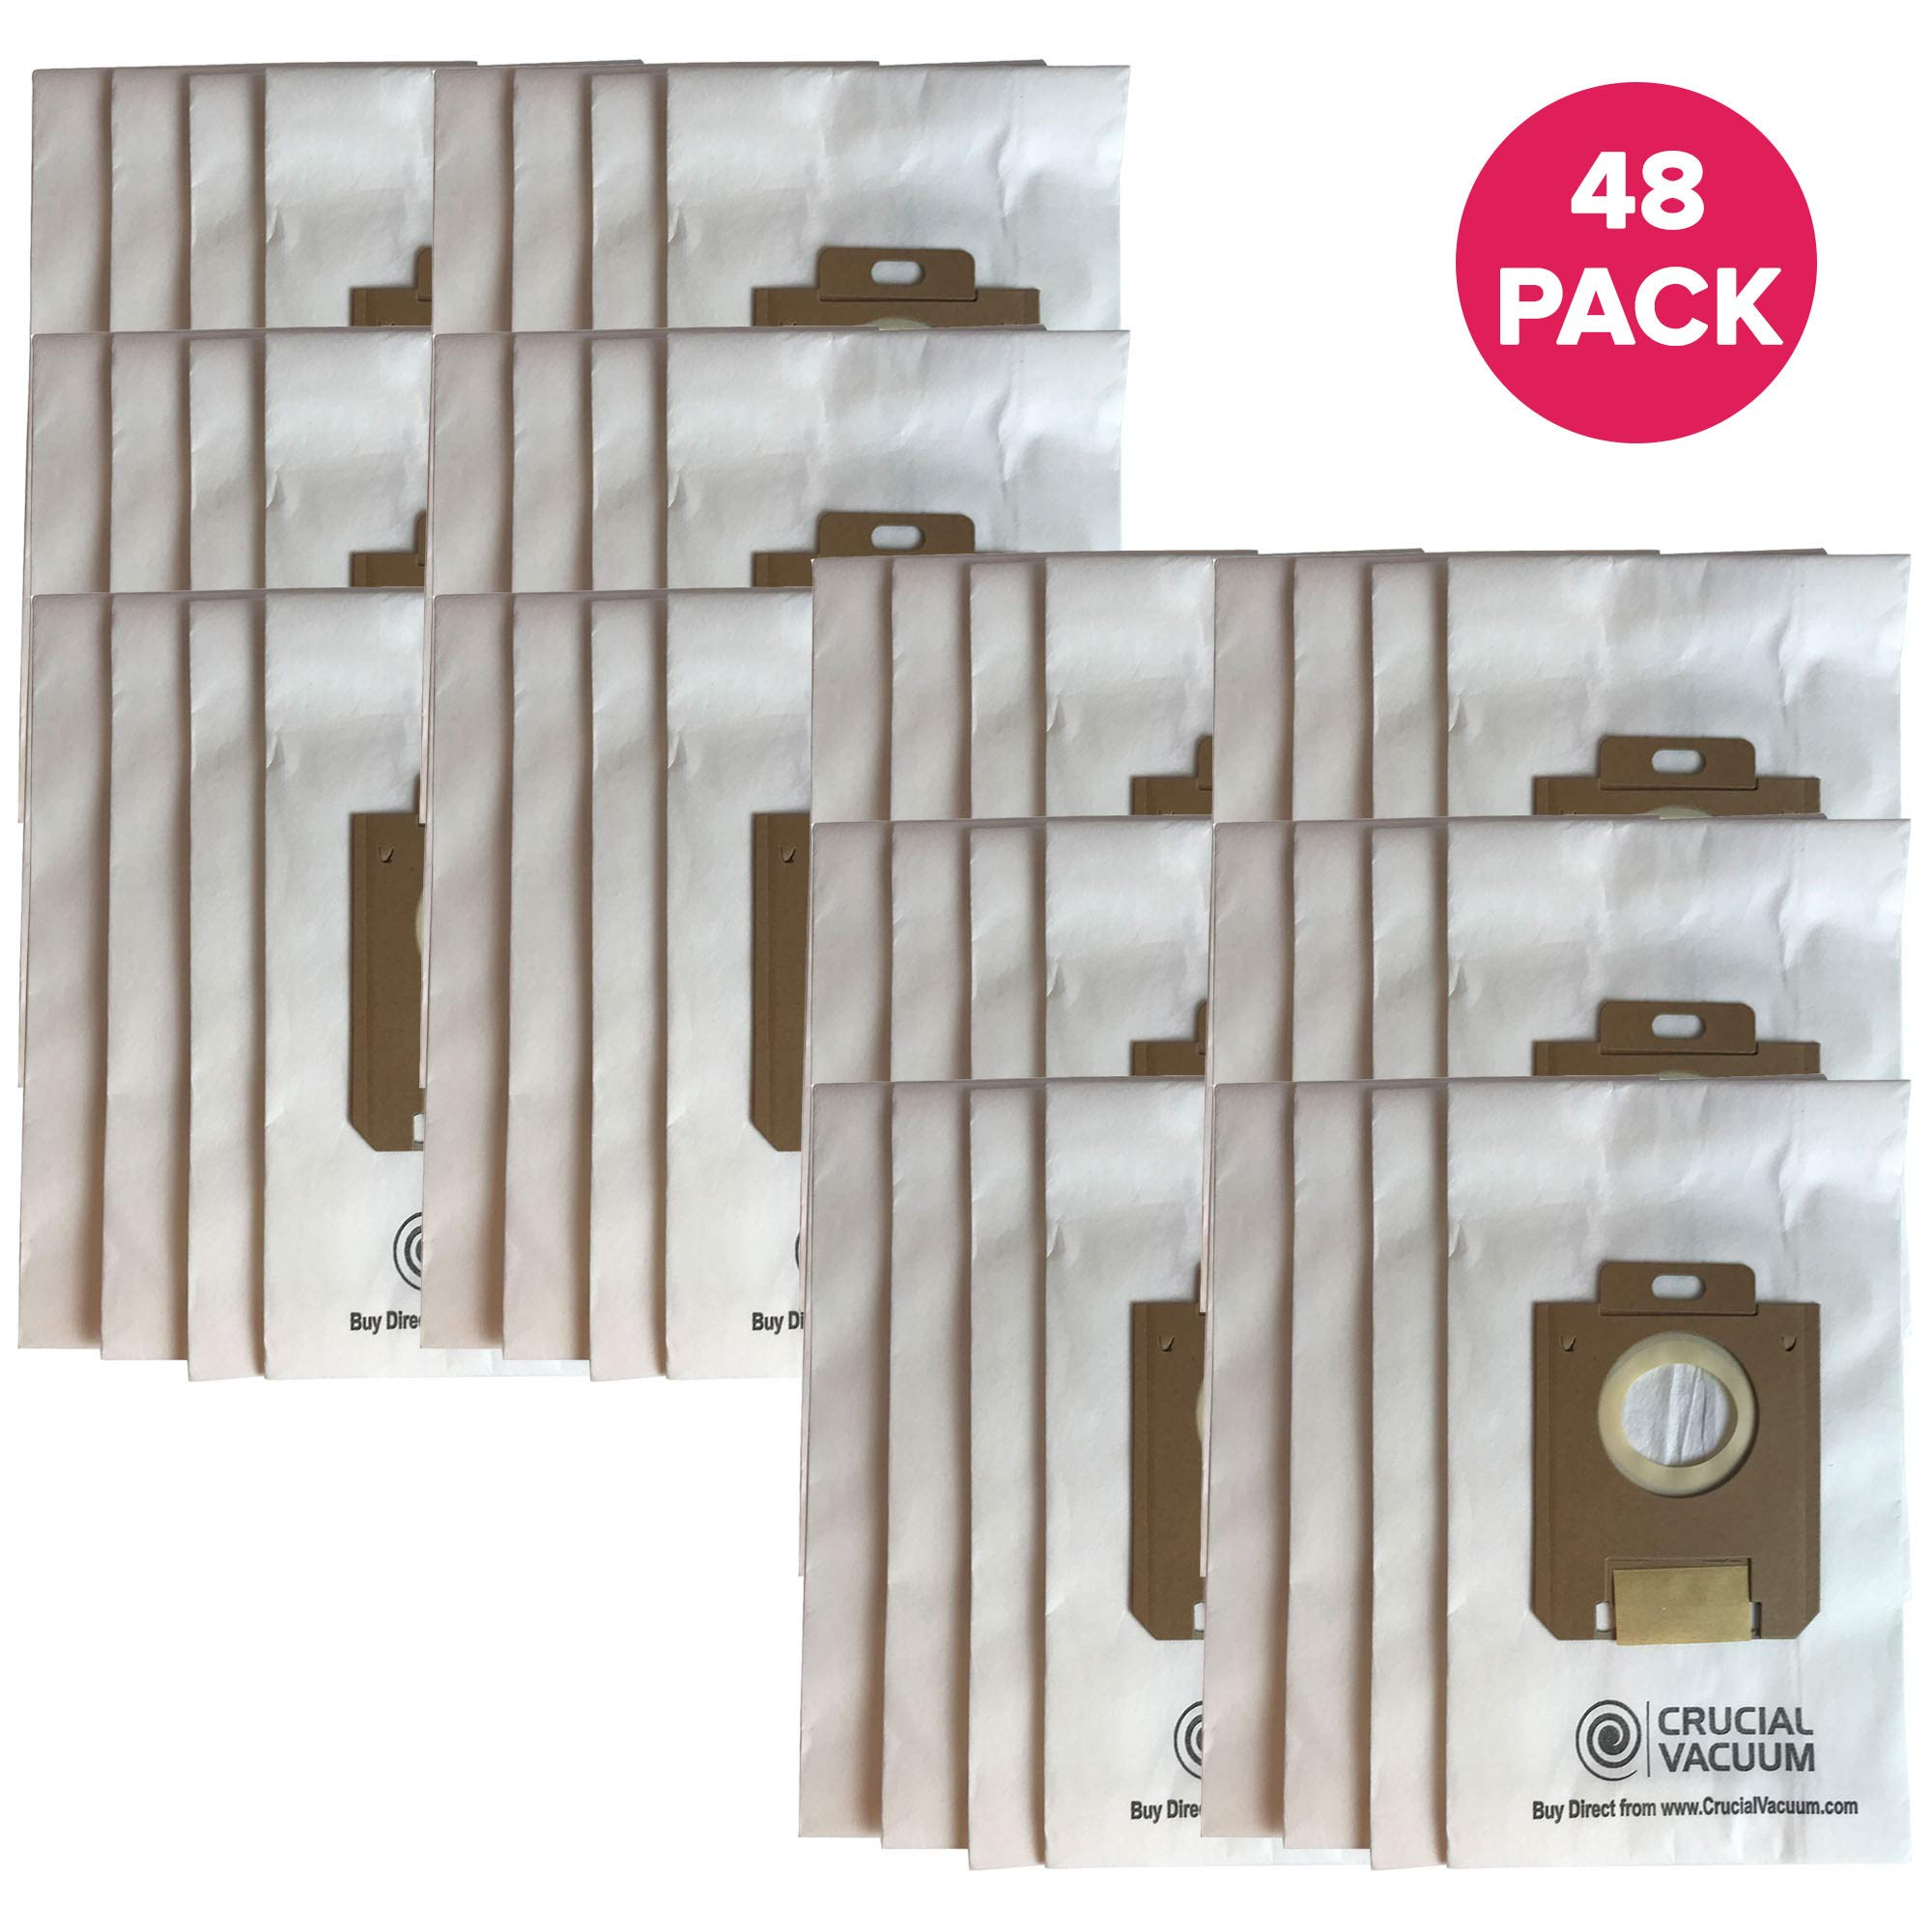 Crucial Vacuum Replacement Vacuum Bag Compatible with Electrolux OX & Eureka S Paper Bags Part # 61230, 61230a, 61230b, 61230c - Fit Harmony Oxygen Paper Bag - Compact Disposable Paper Bags (48 Pack)